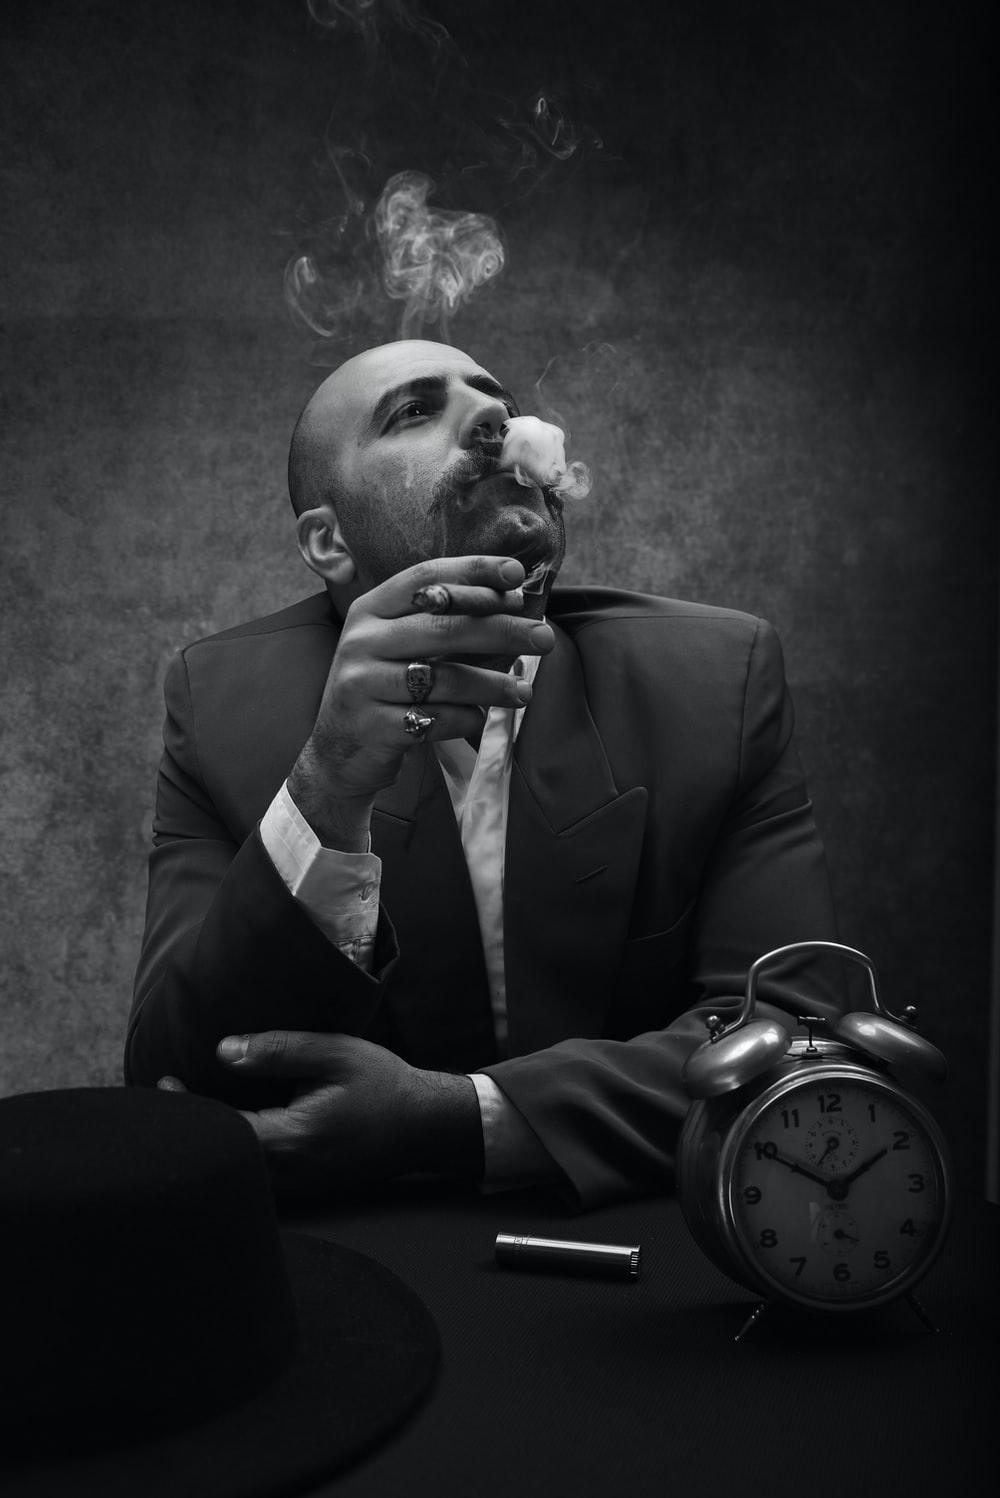 man wearing black suit sitting by the table while smoking